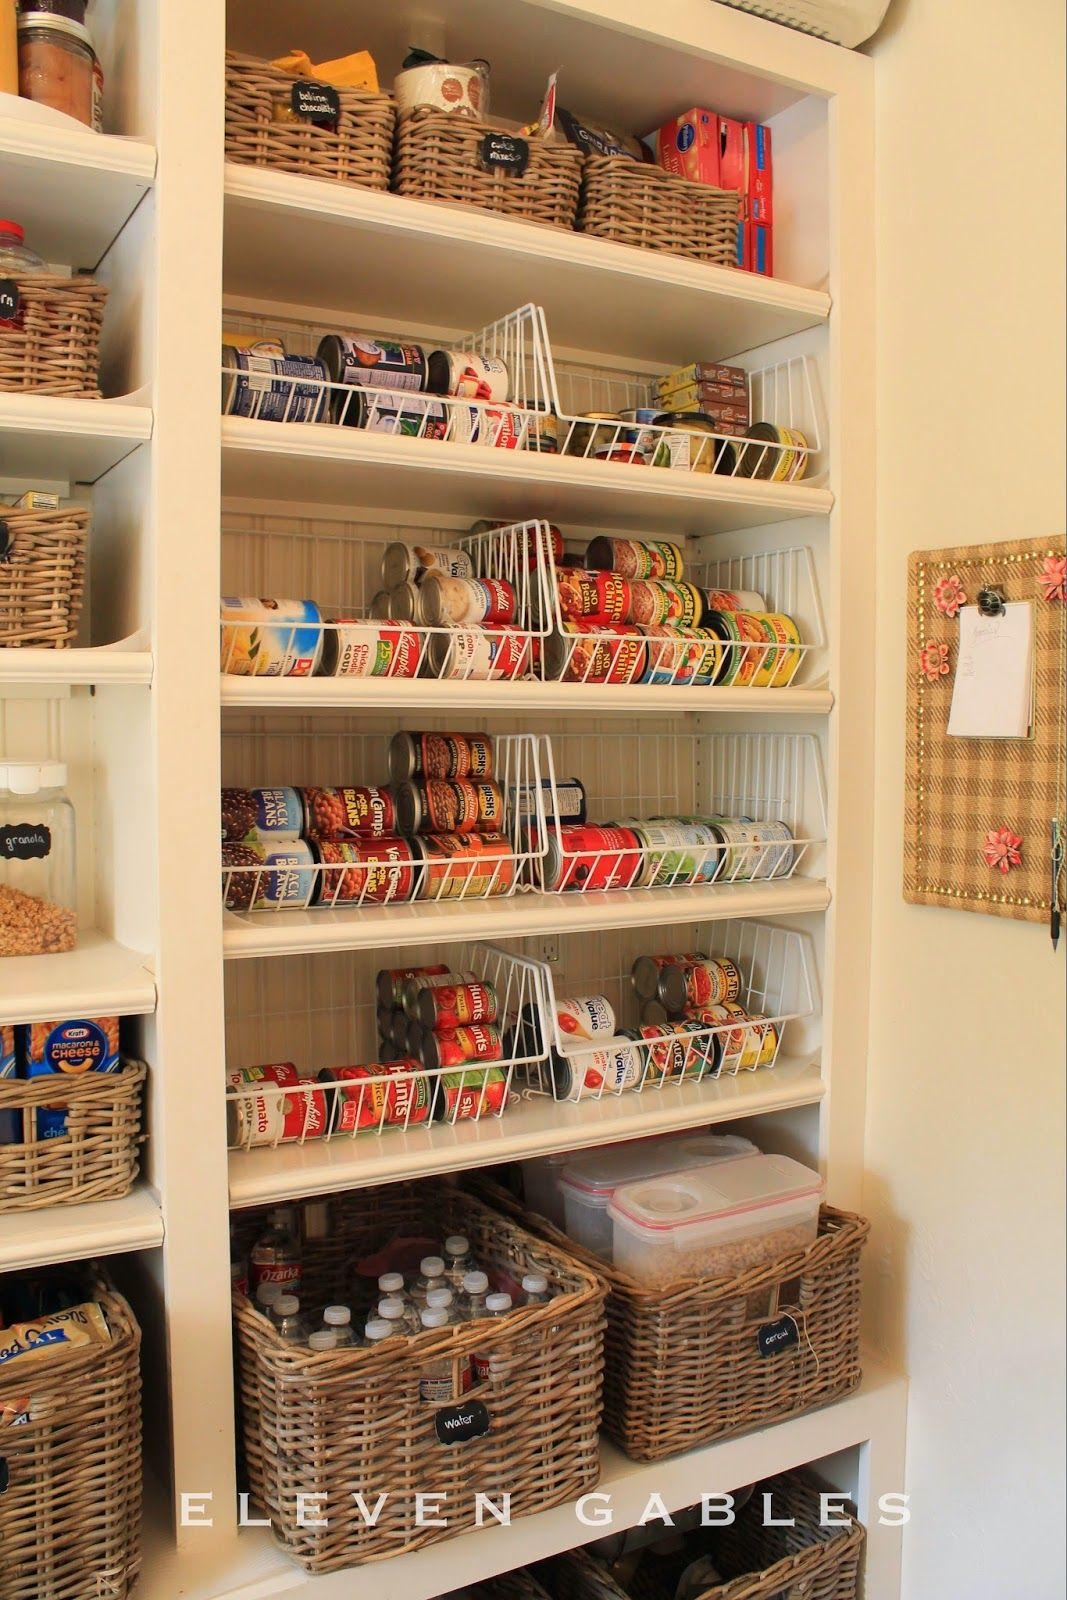 Eleven gables butlers pantry organization eleven gables butlers pantry organization food storage